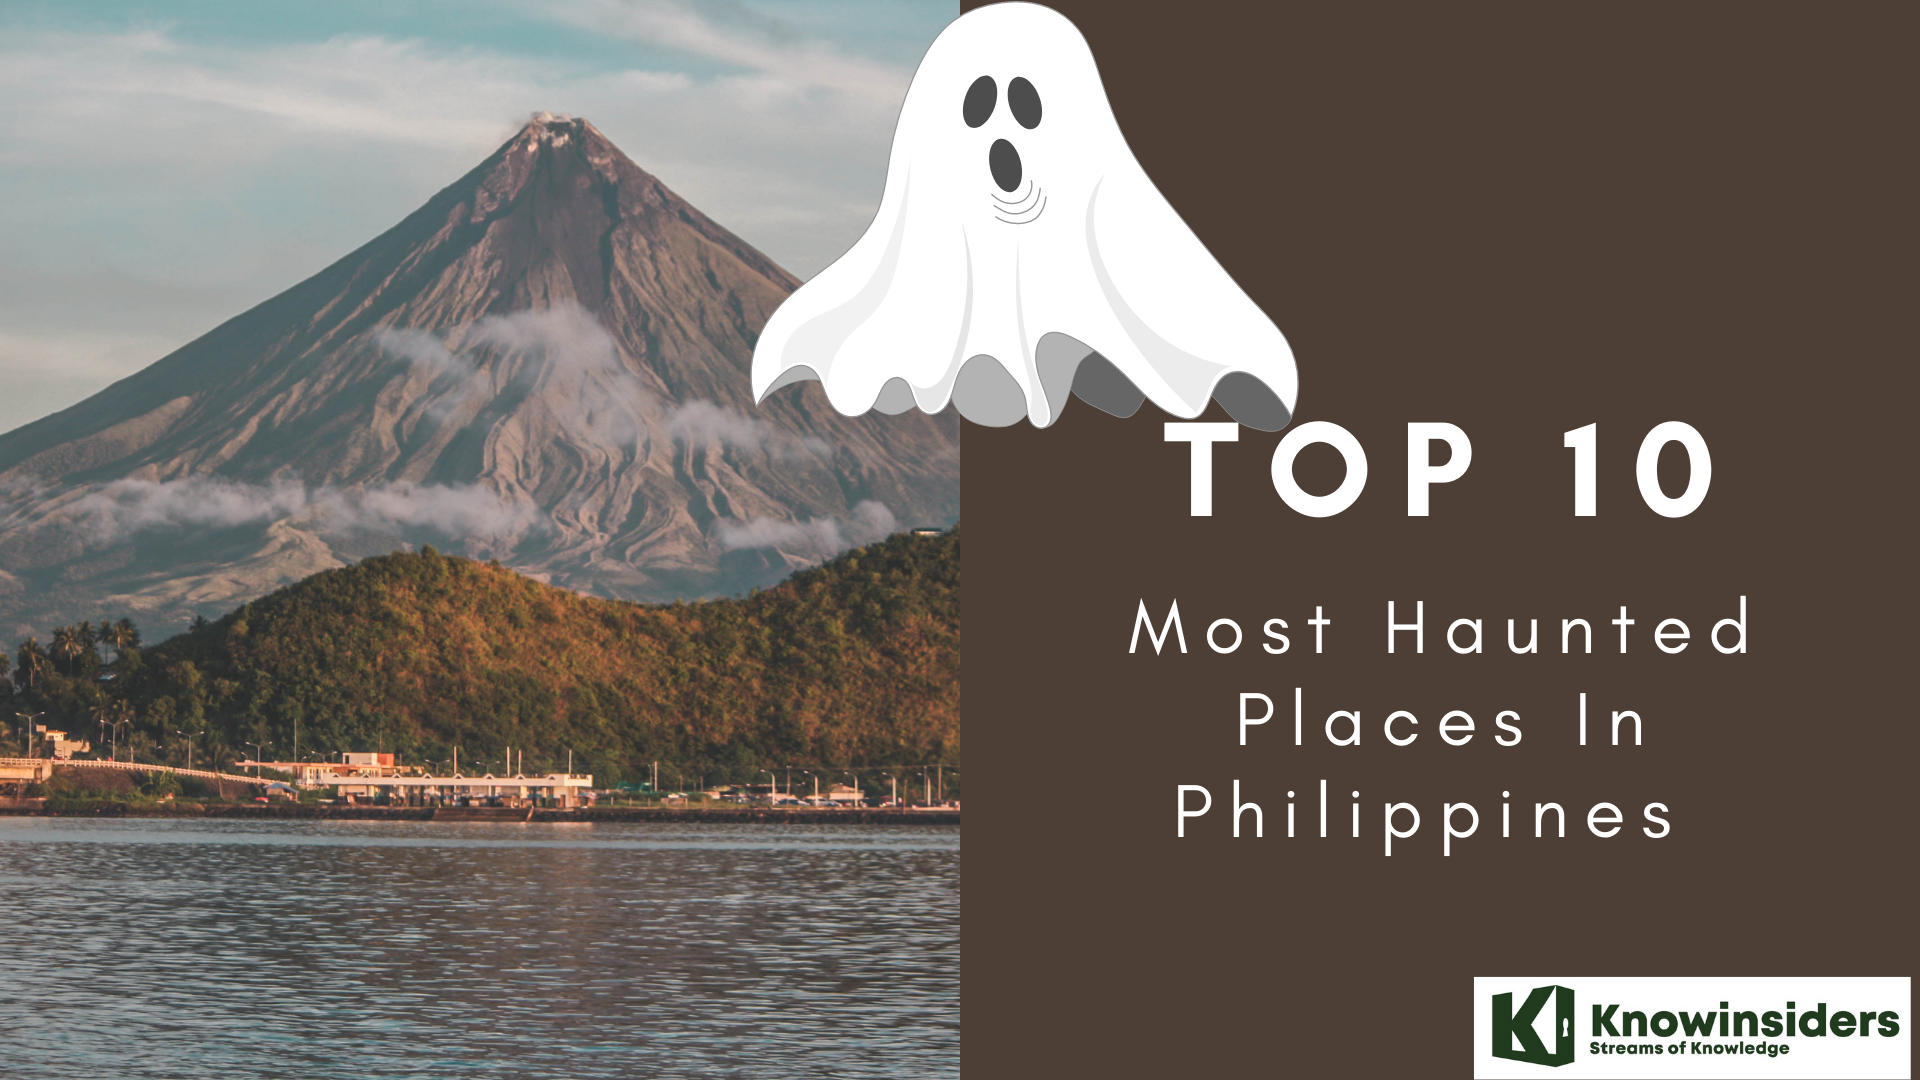 Top 10 Most Haunted Places in Philippines